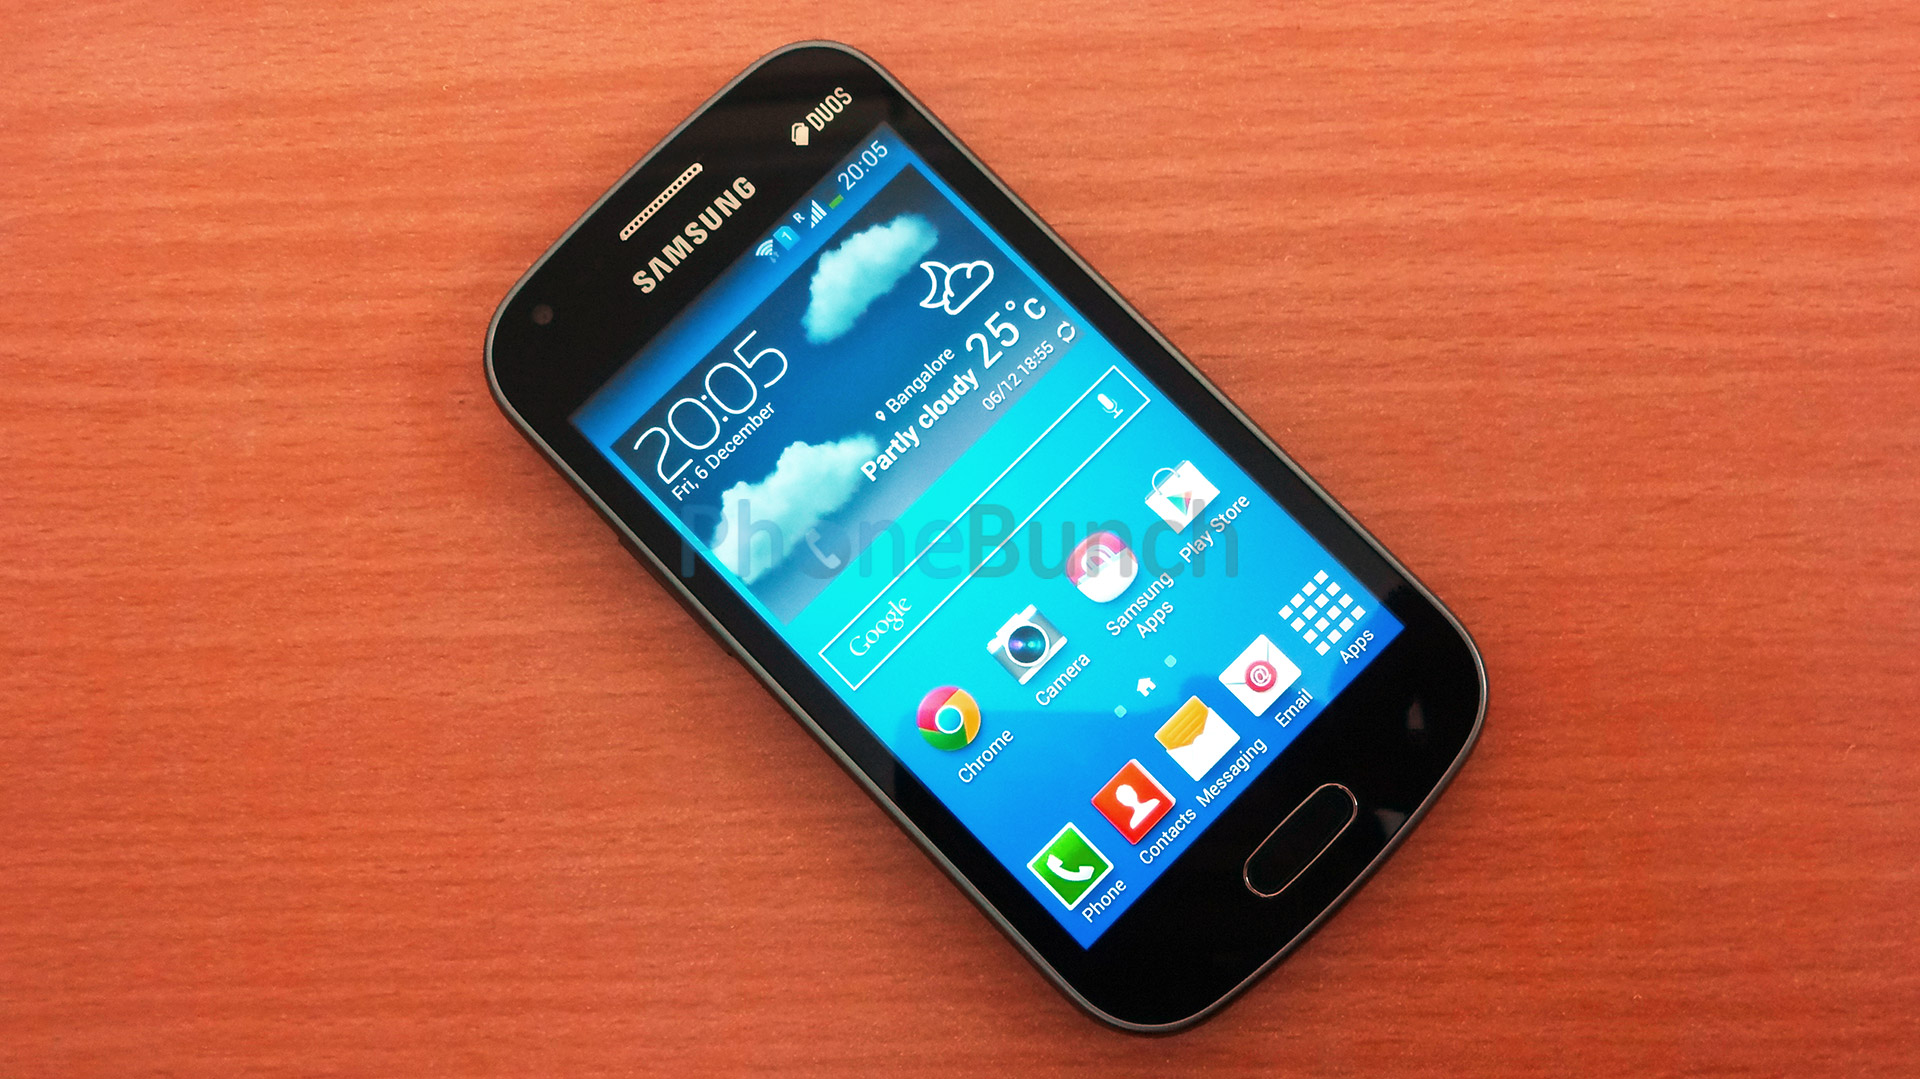 Samsung Galaxy S Duos Price in India, Full Specification ...